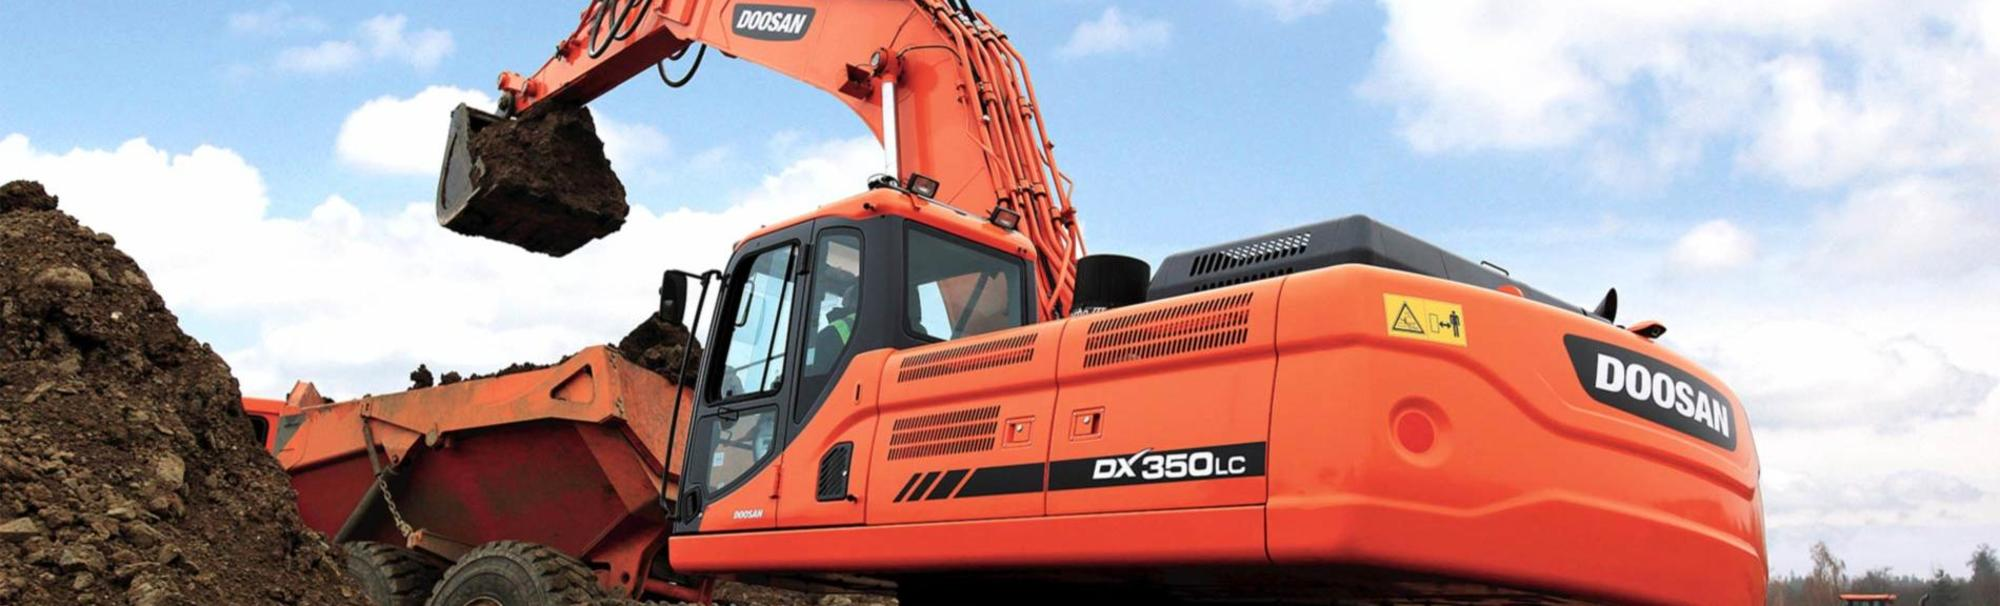 Bobcat For Rent Daytona Fl >> Bobcat & Doosan Equipment Rentals in Daytona, Fort Myers, Jacksonville, Miami, Orlando, Palatka ...